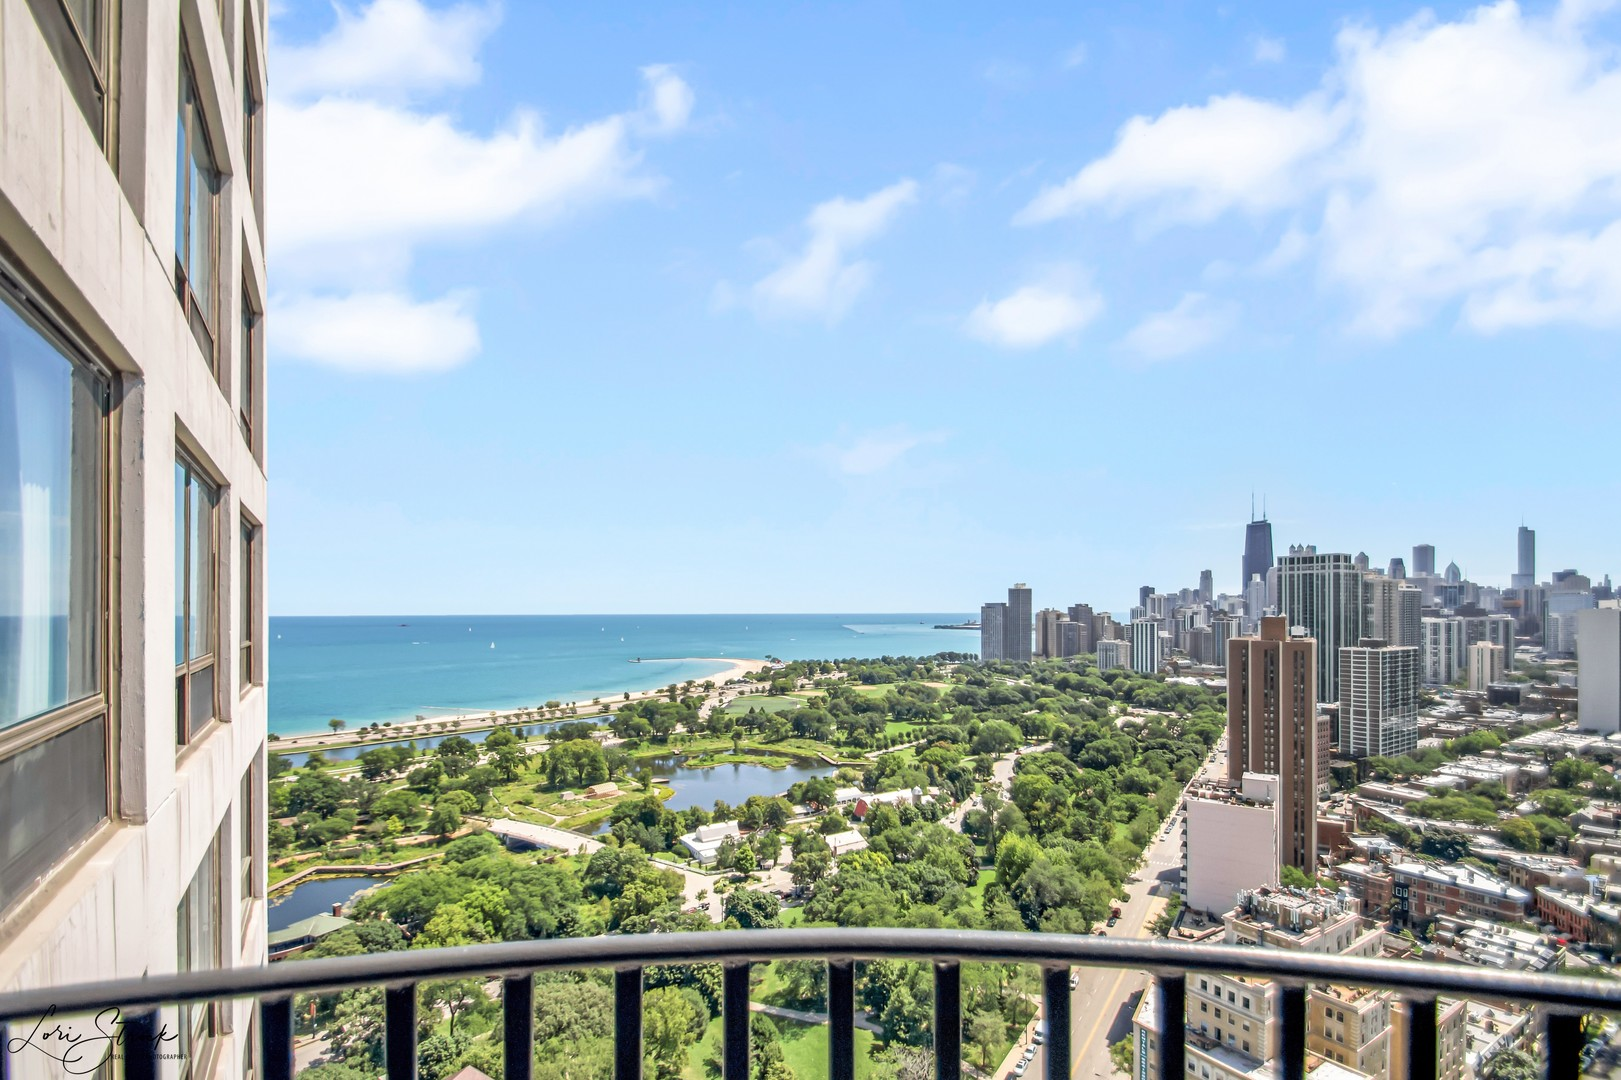 Incomparable high floor condo with breathtaking views of the city skyline, lake and park from this 3